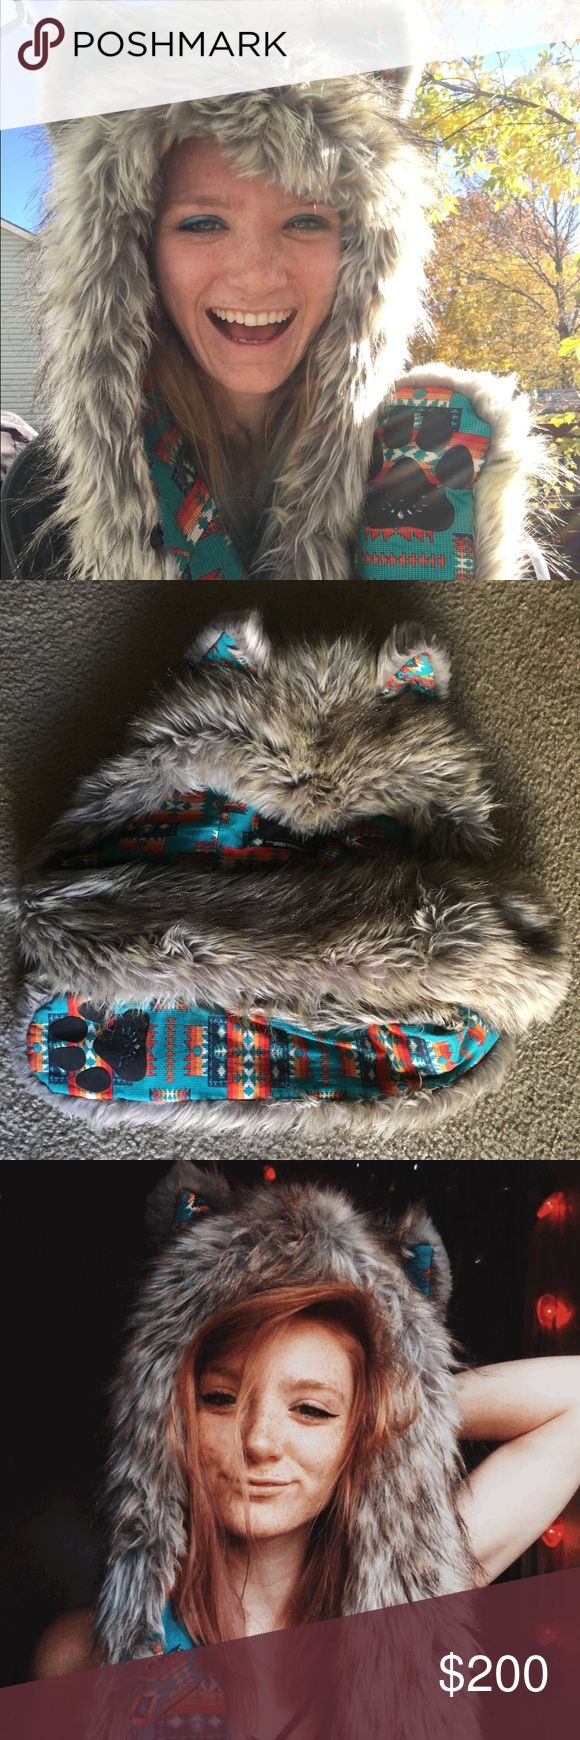 silver coyote spirithood with HB3 speakers like new, comes with built in speakers & an aux cord pocket so you can groove to some tunes :) SpiritHoods Accessories Hats